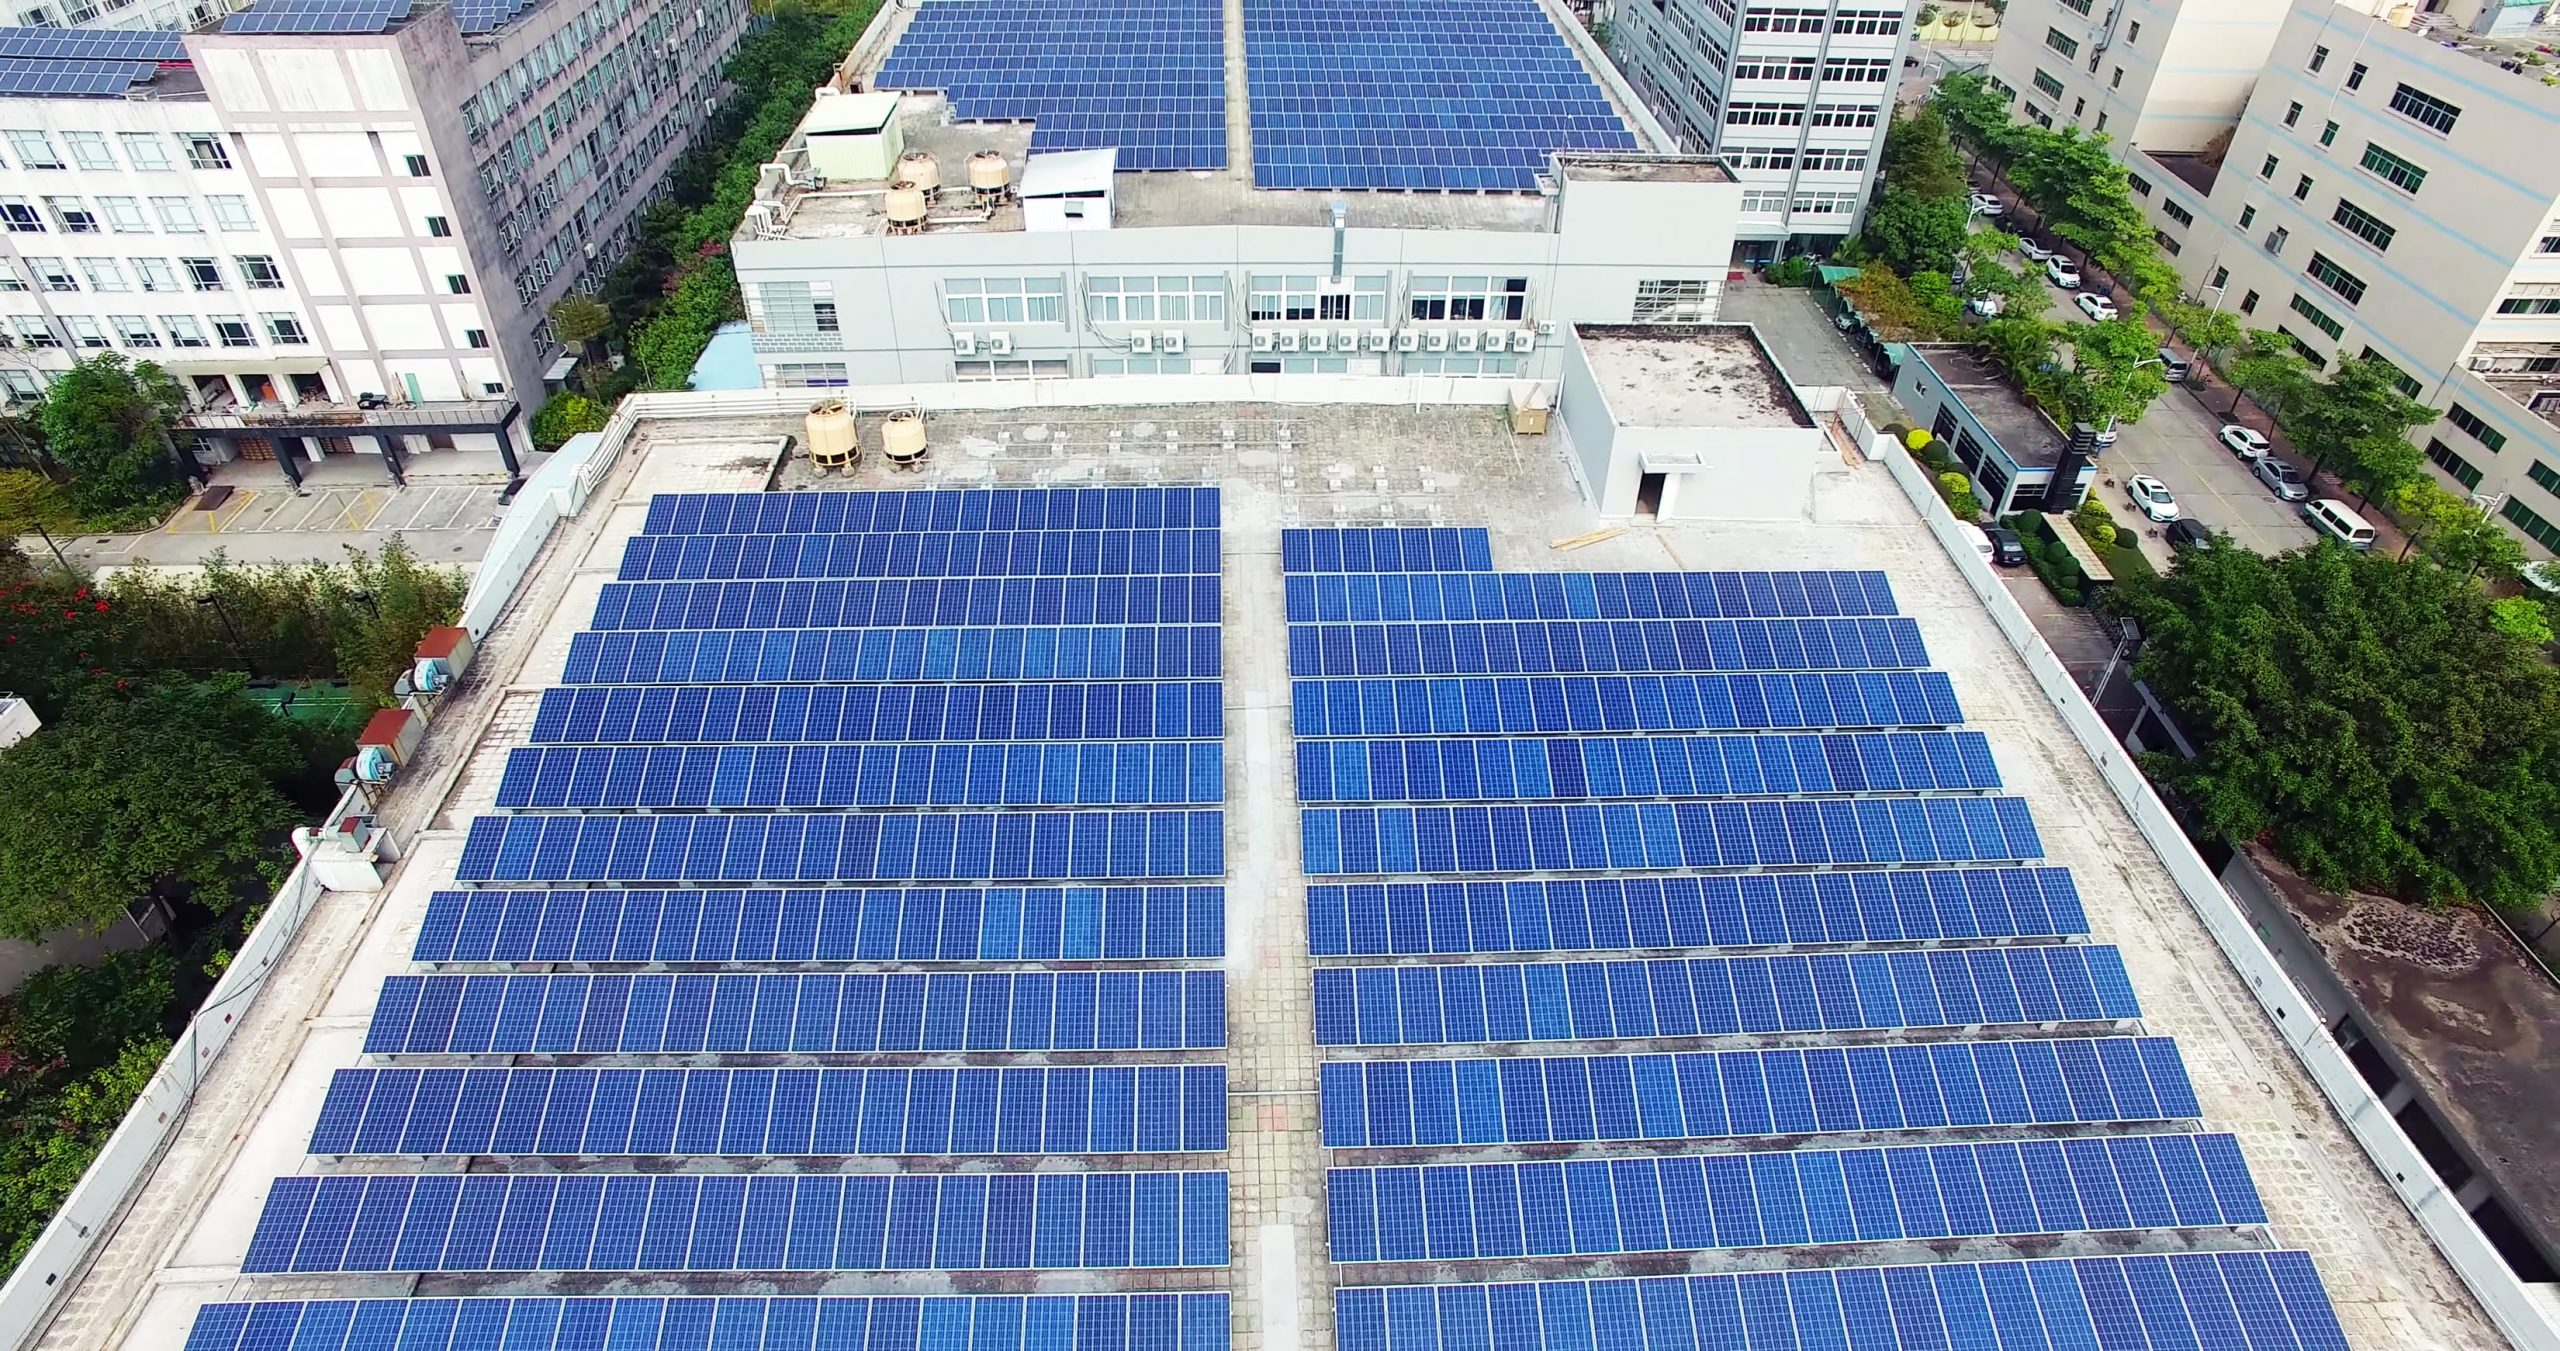 professional building with solar panels